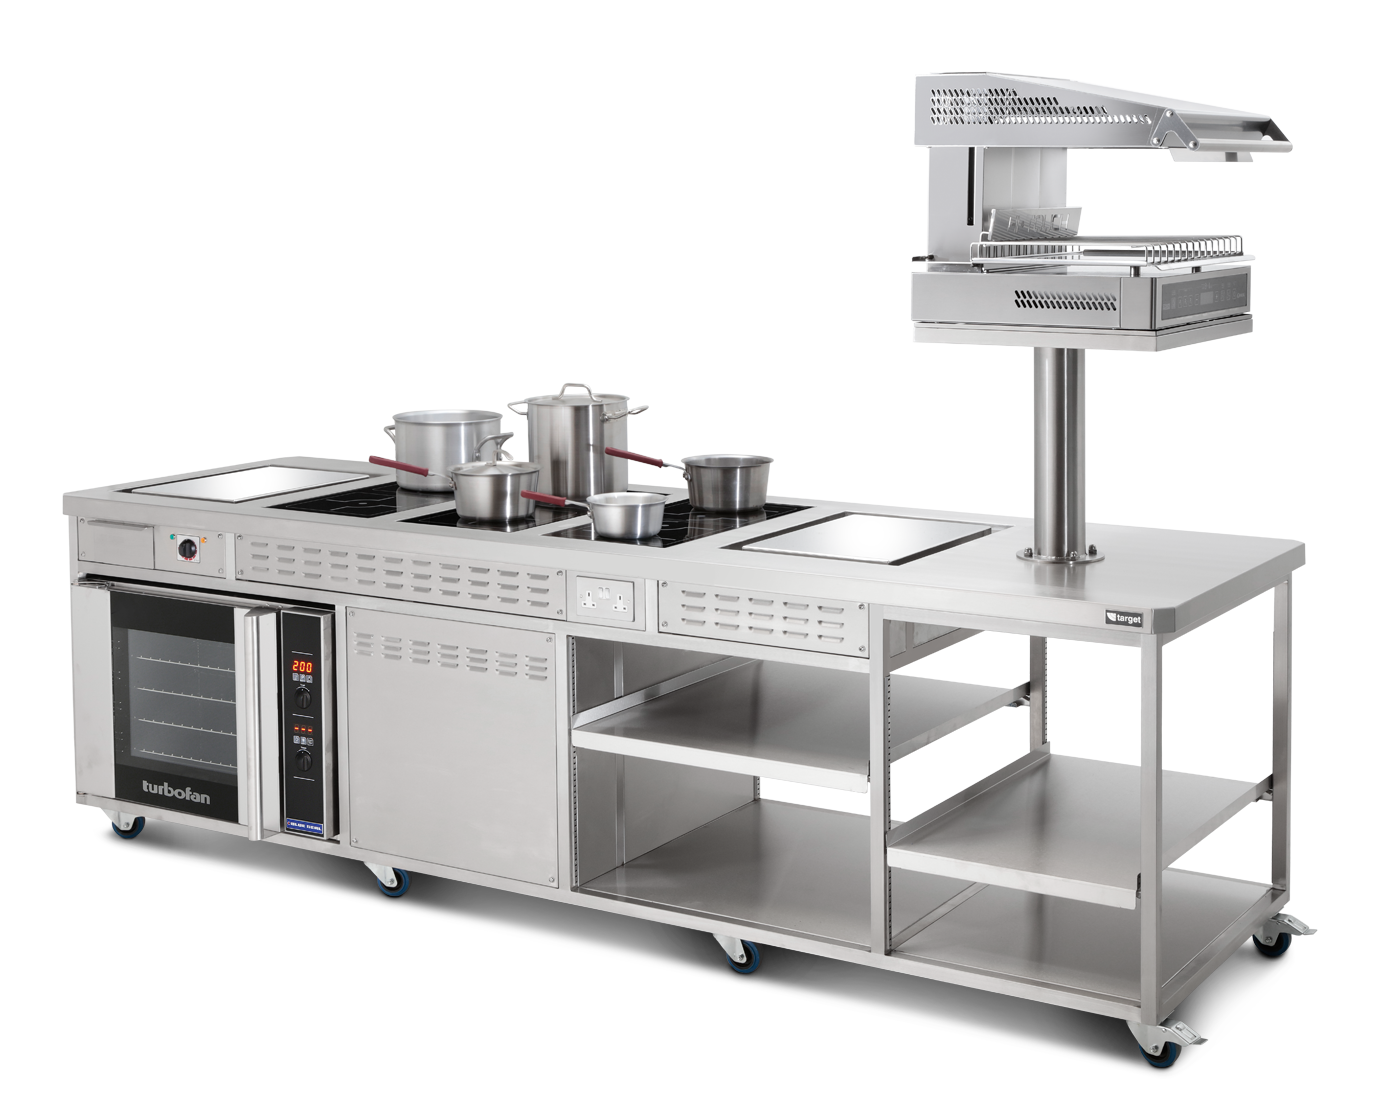 commercial-induction-range-island-suite-oven-under.png